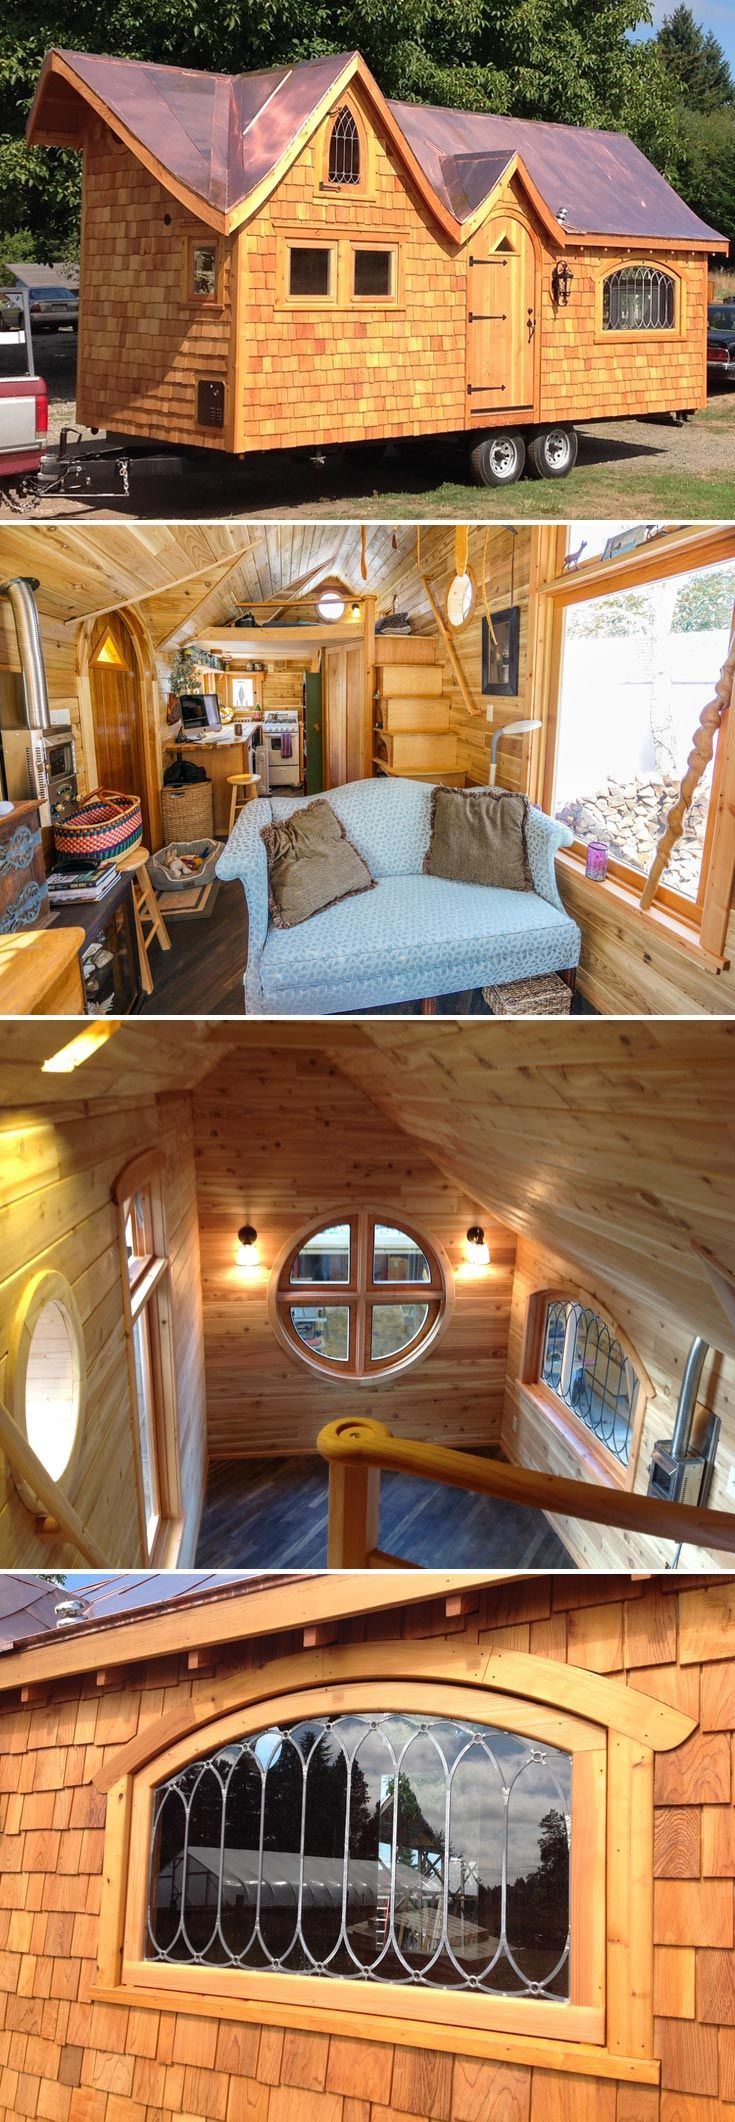 A Gothic tiny house with a dramatic double dormer roof clad in copper and a custom built mahogany barrel top door with triangle stained glass window.